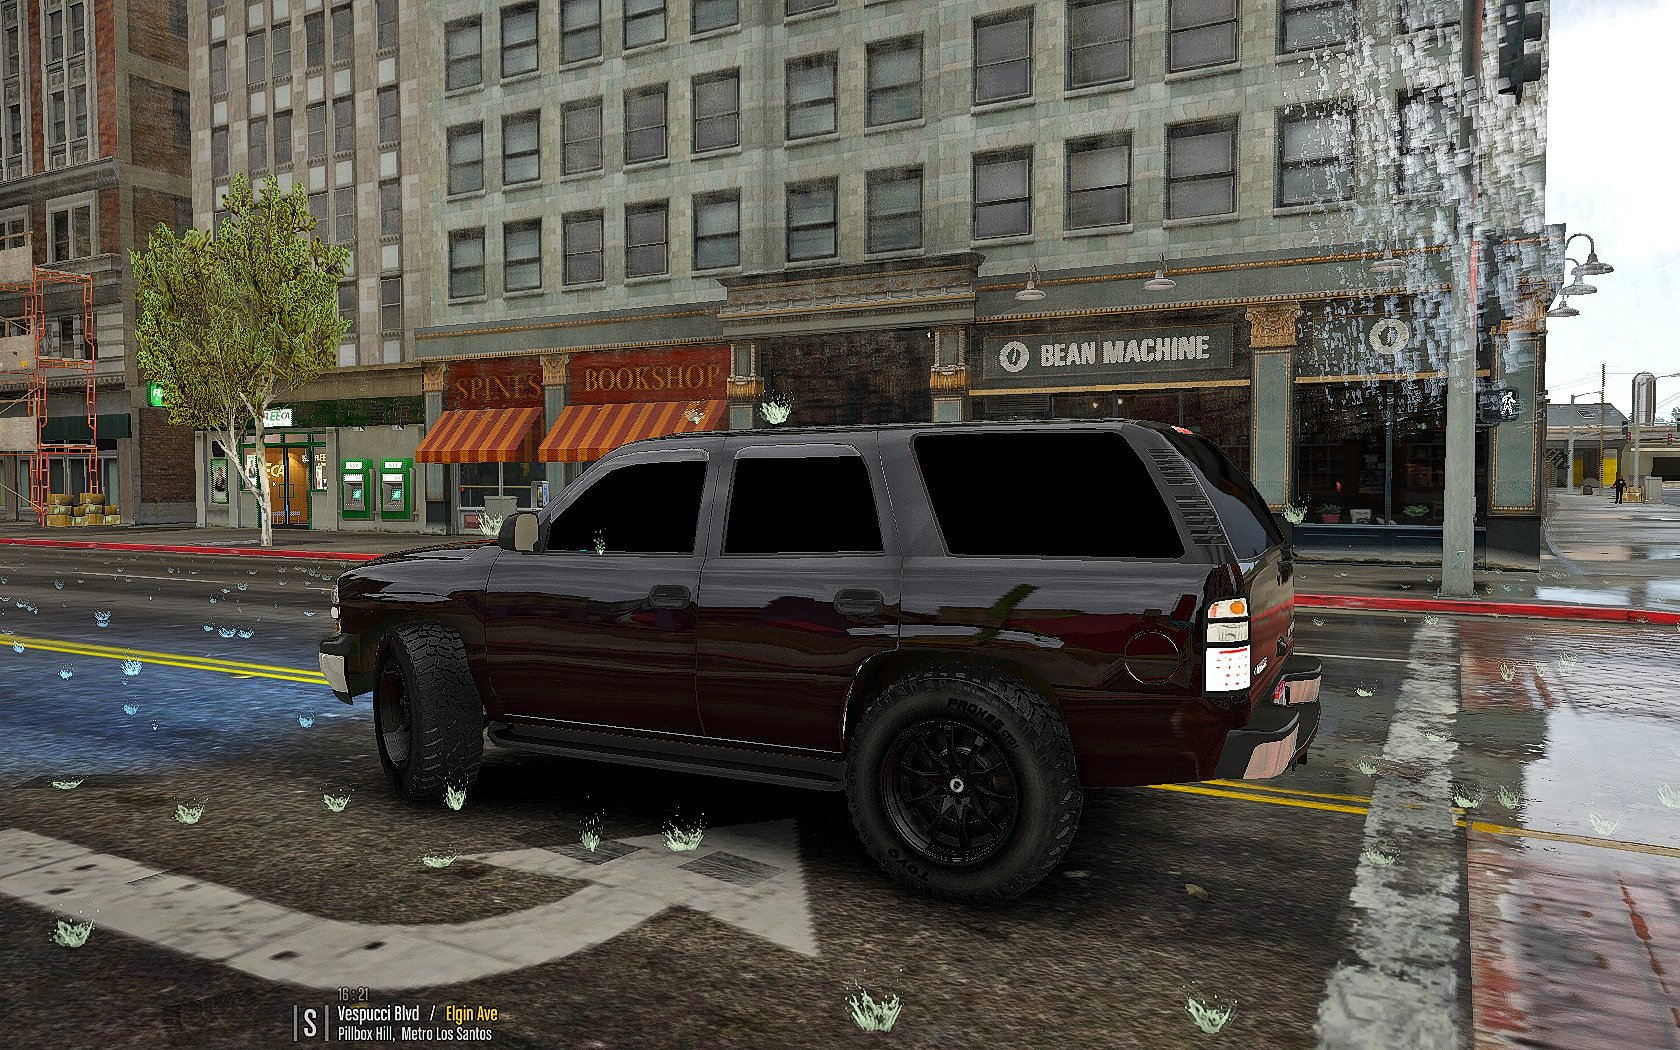 2003 Chevy Tahoe [Replace] Regular and Donk versions ...